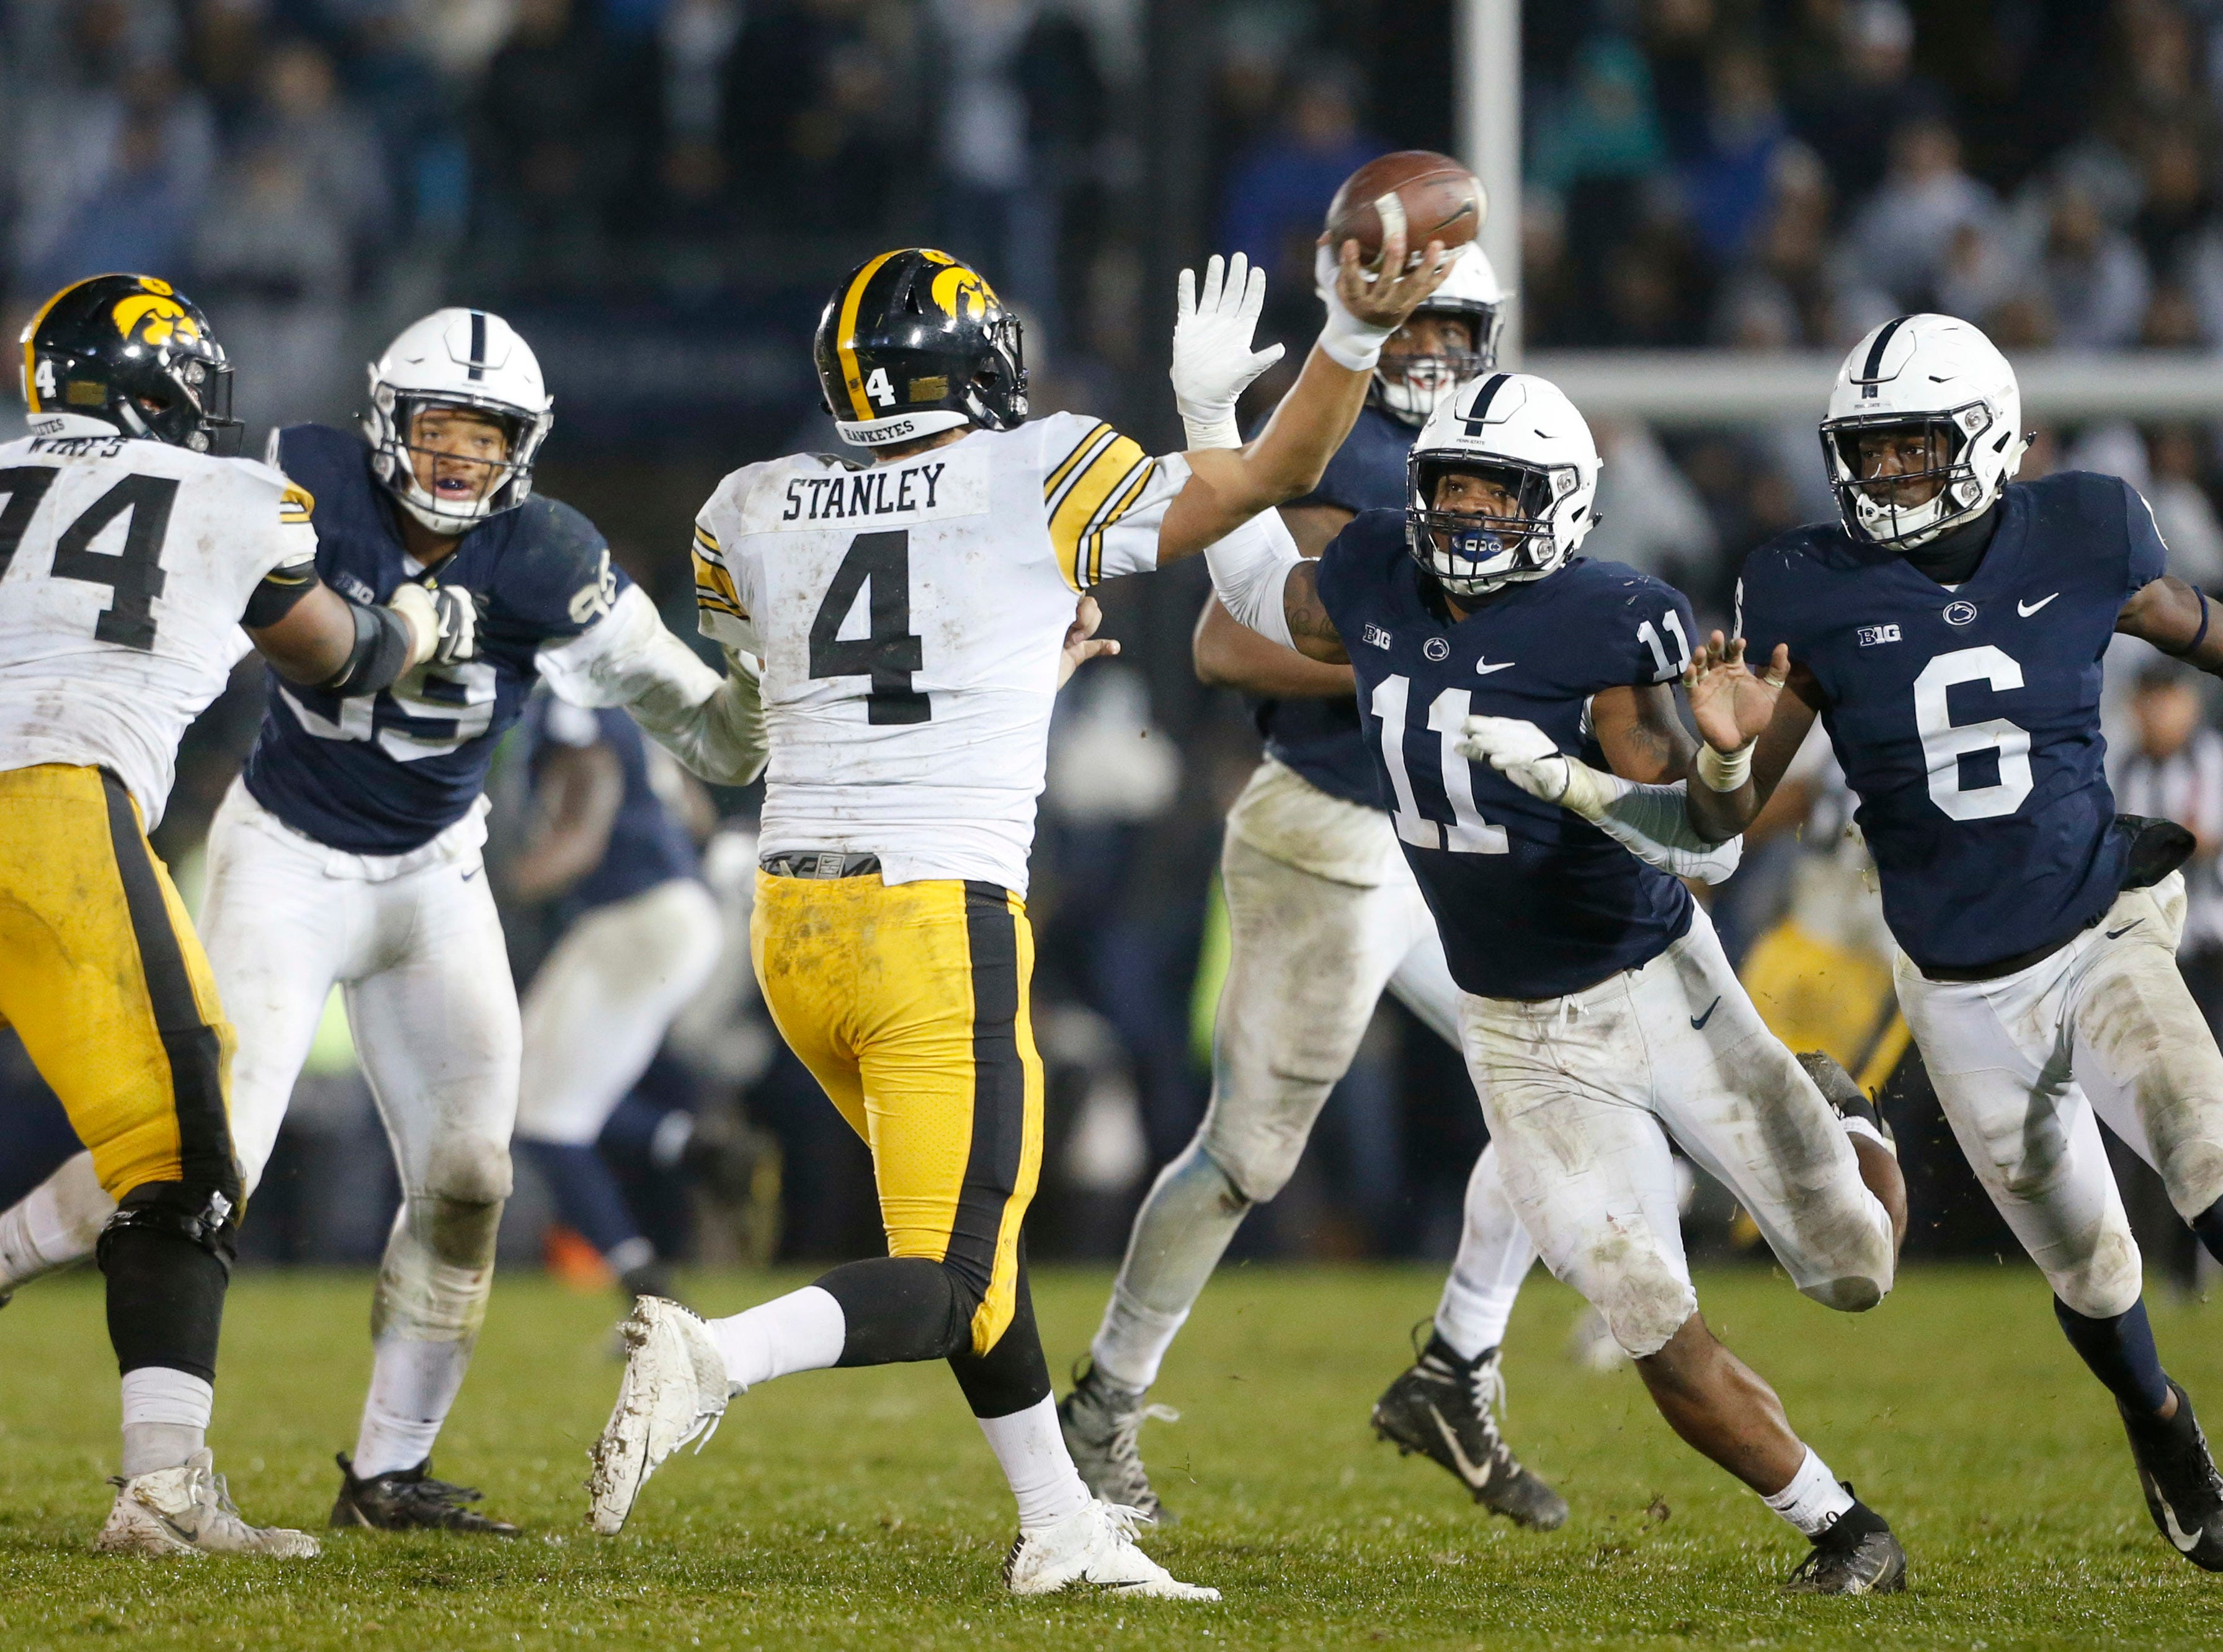 Iowa quarterback Nate Stanley (4) is pressured by Penn State's Micah Parson (11) and Cam Brown (6) as he throws during the second half of an NCAA college football game in State College, Pa., Saturday, Oct. 27, 2018. Penn State won 30-24. (AP Photo/Chris Knight)